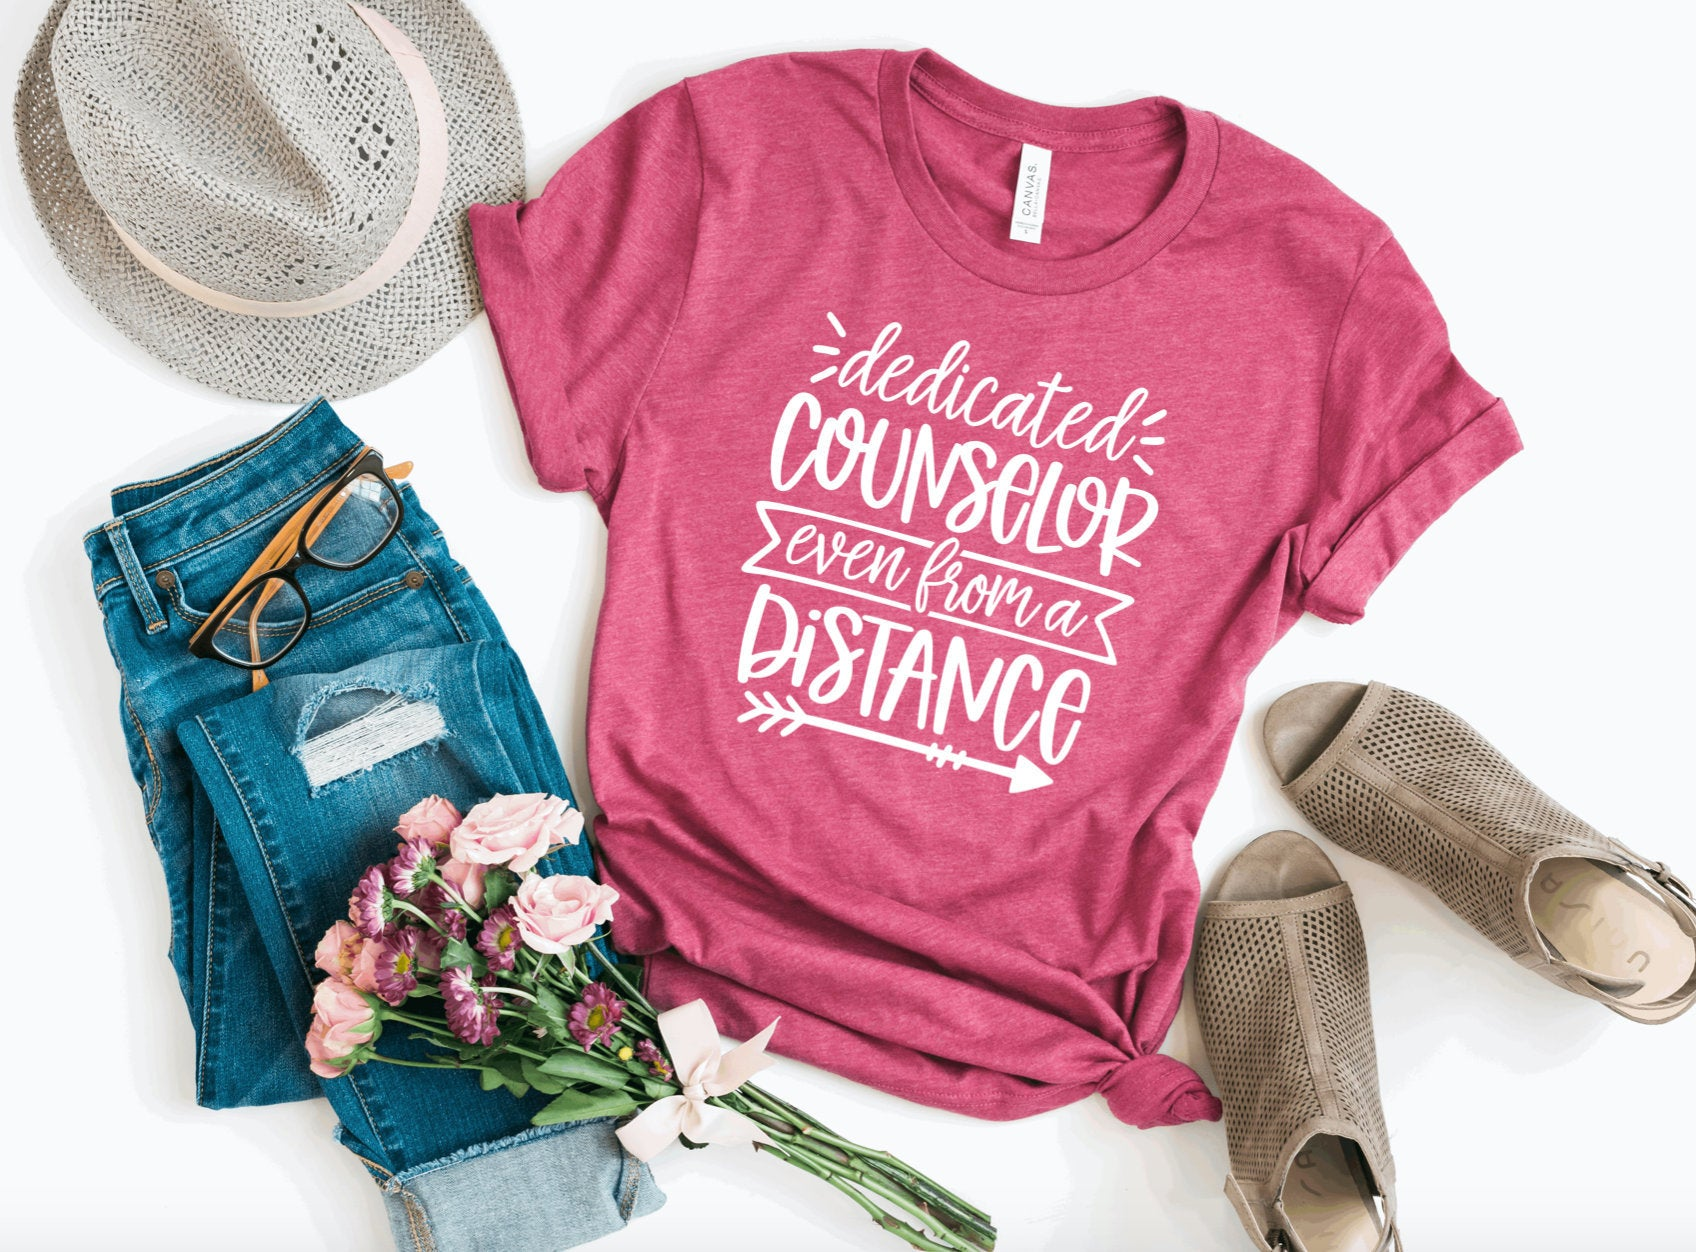 Dedicated Counselor Even From A Distance T-Shirt - Counselor T-shirt - Counselor Tees - Online Learning Shirt - Back To School Shirt